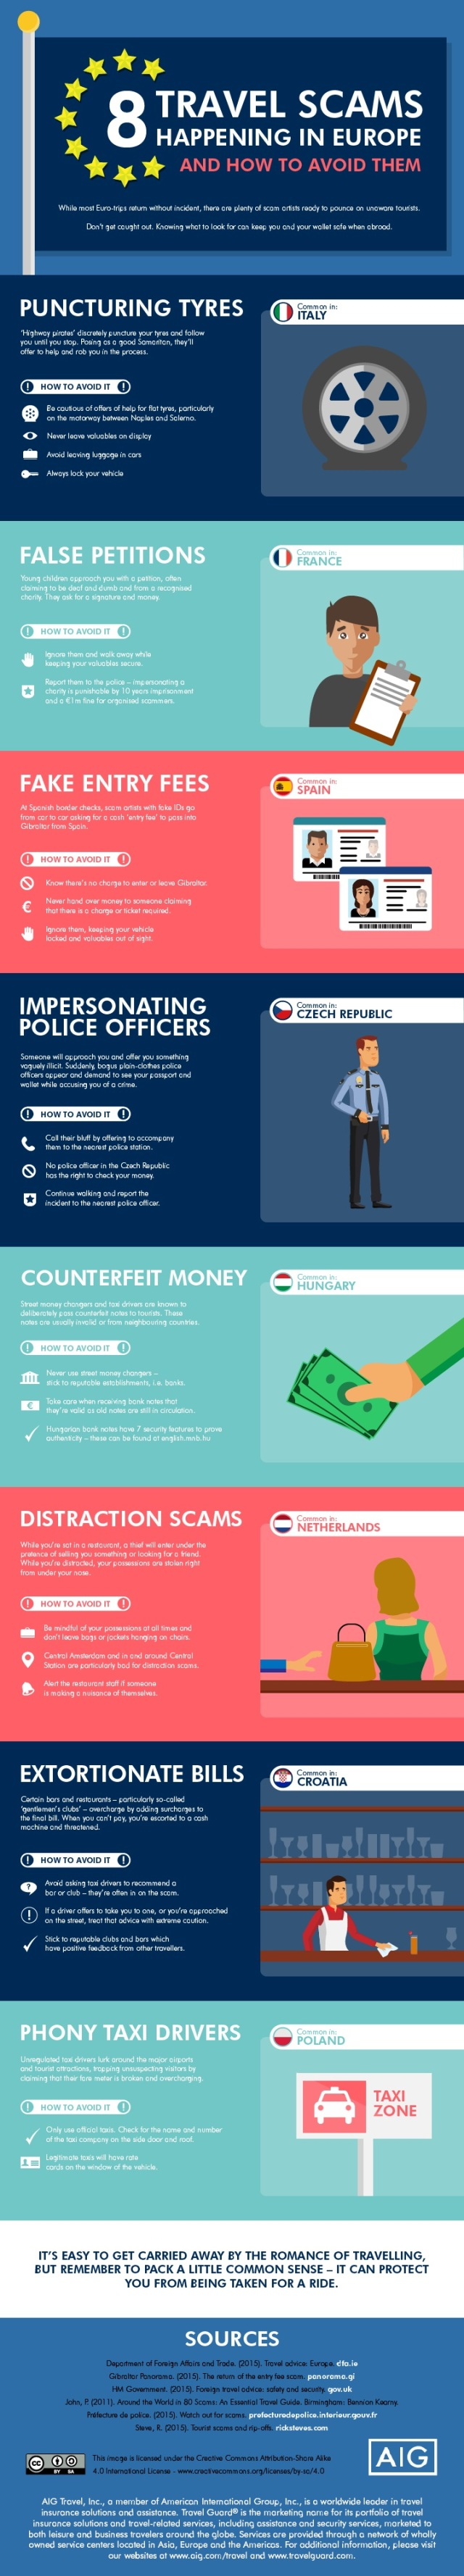 8 Travel Scams Happening in Europe